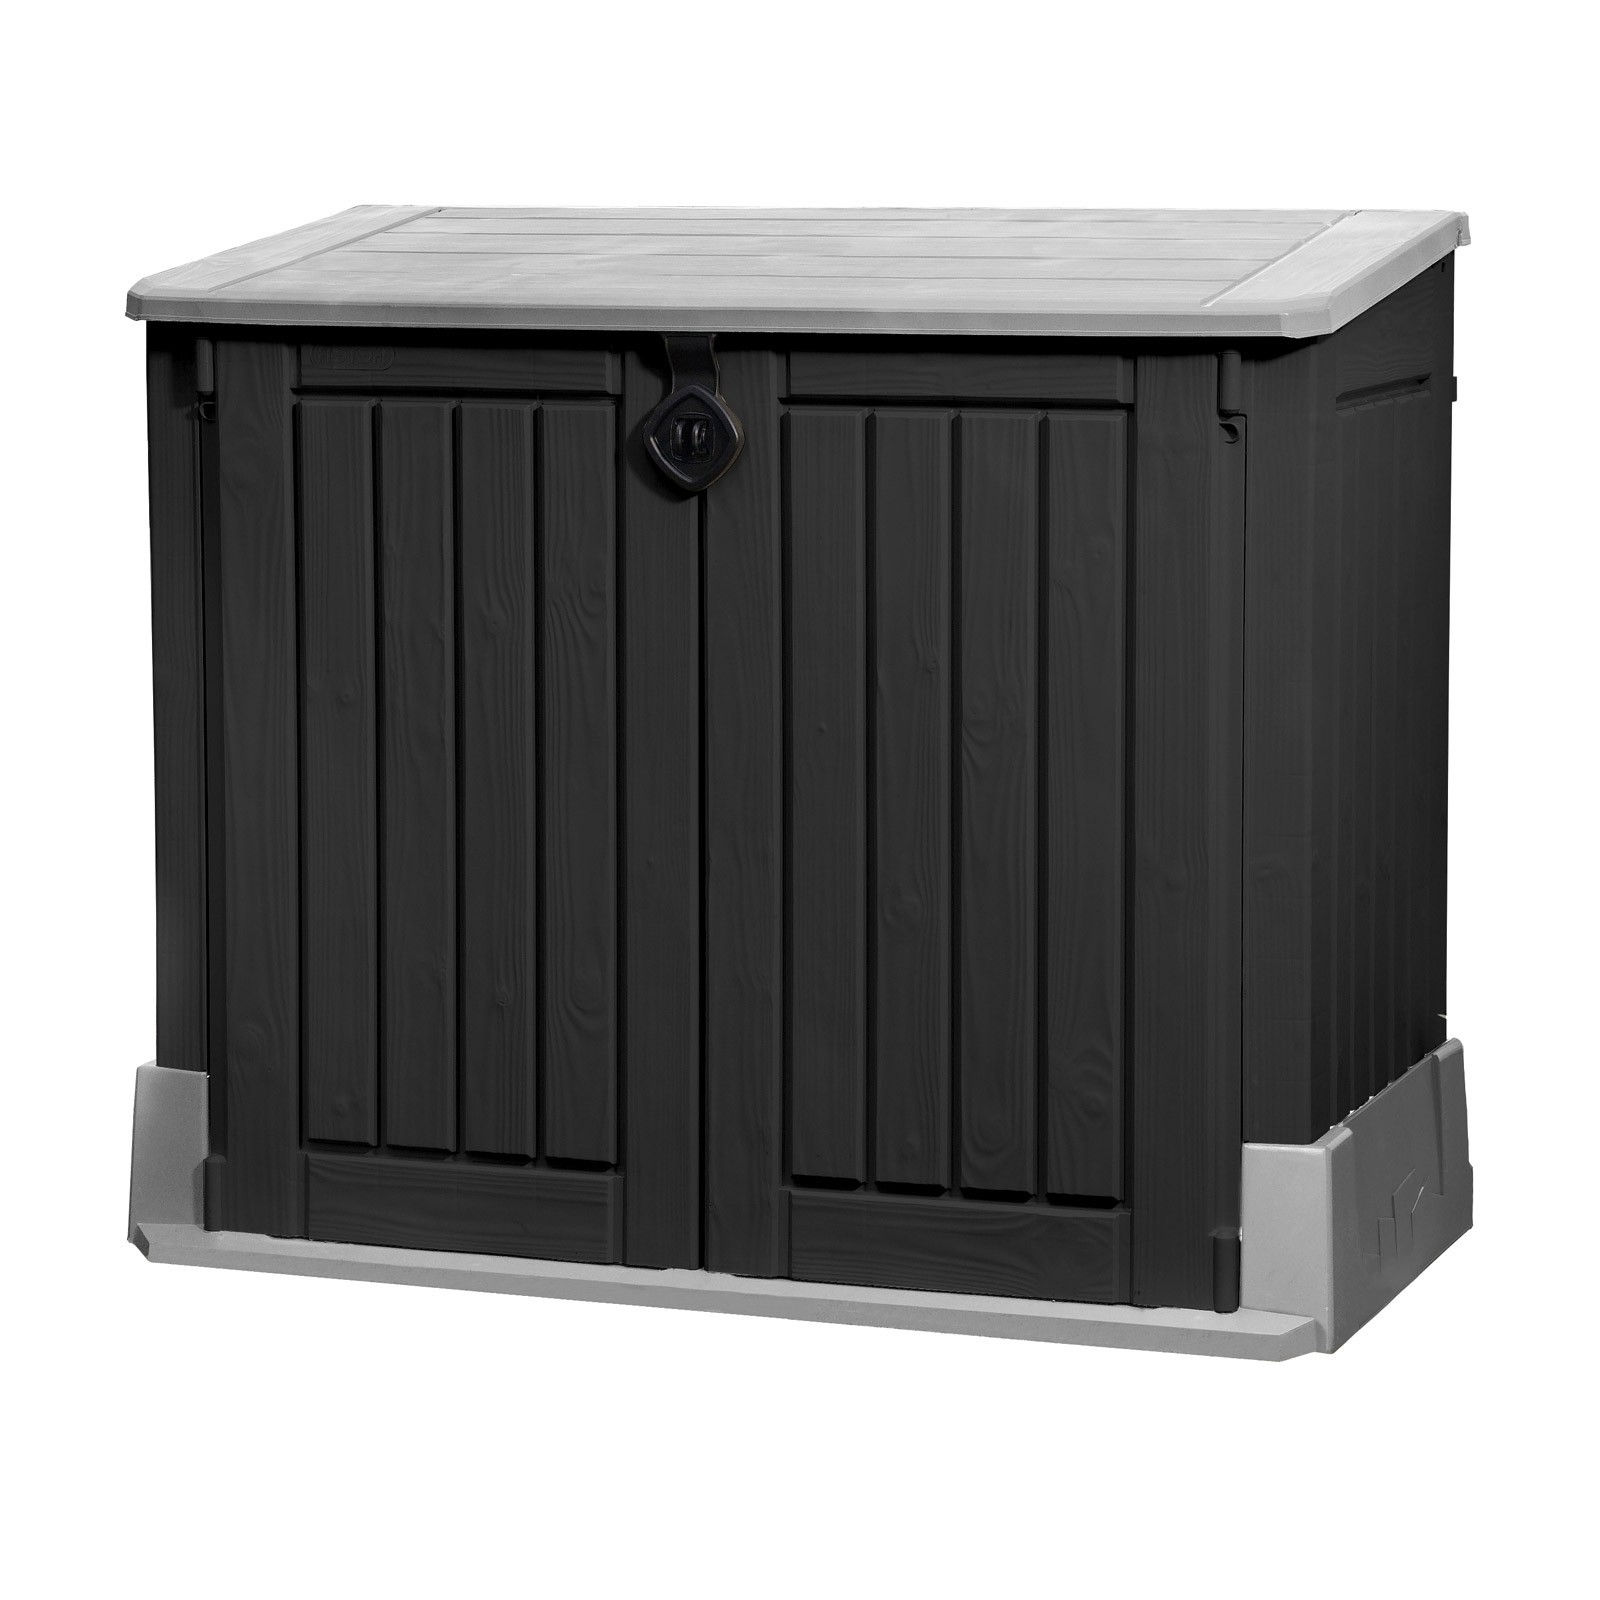 keter m lltonnenbox store it out midi f r 2x120 liter. Black Bedroom Furniture Sets. Home Design Ideas